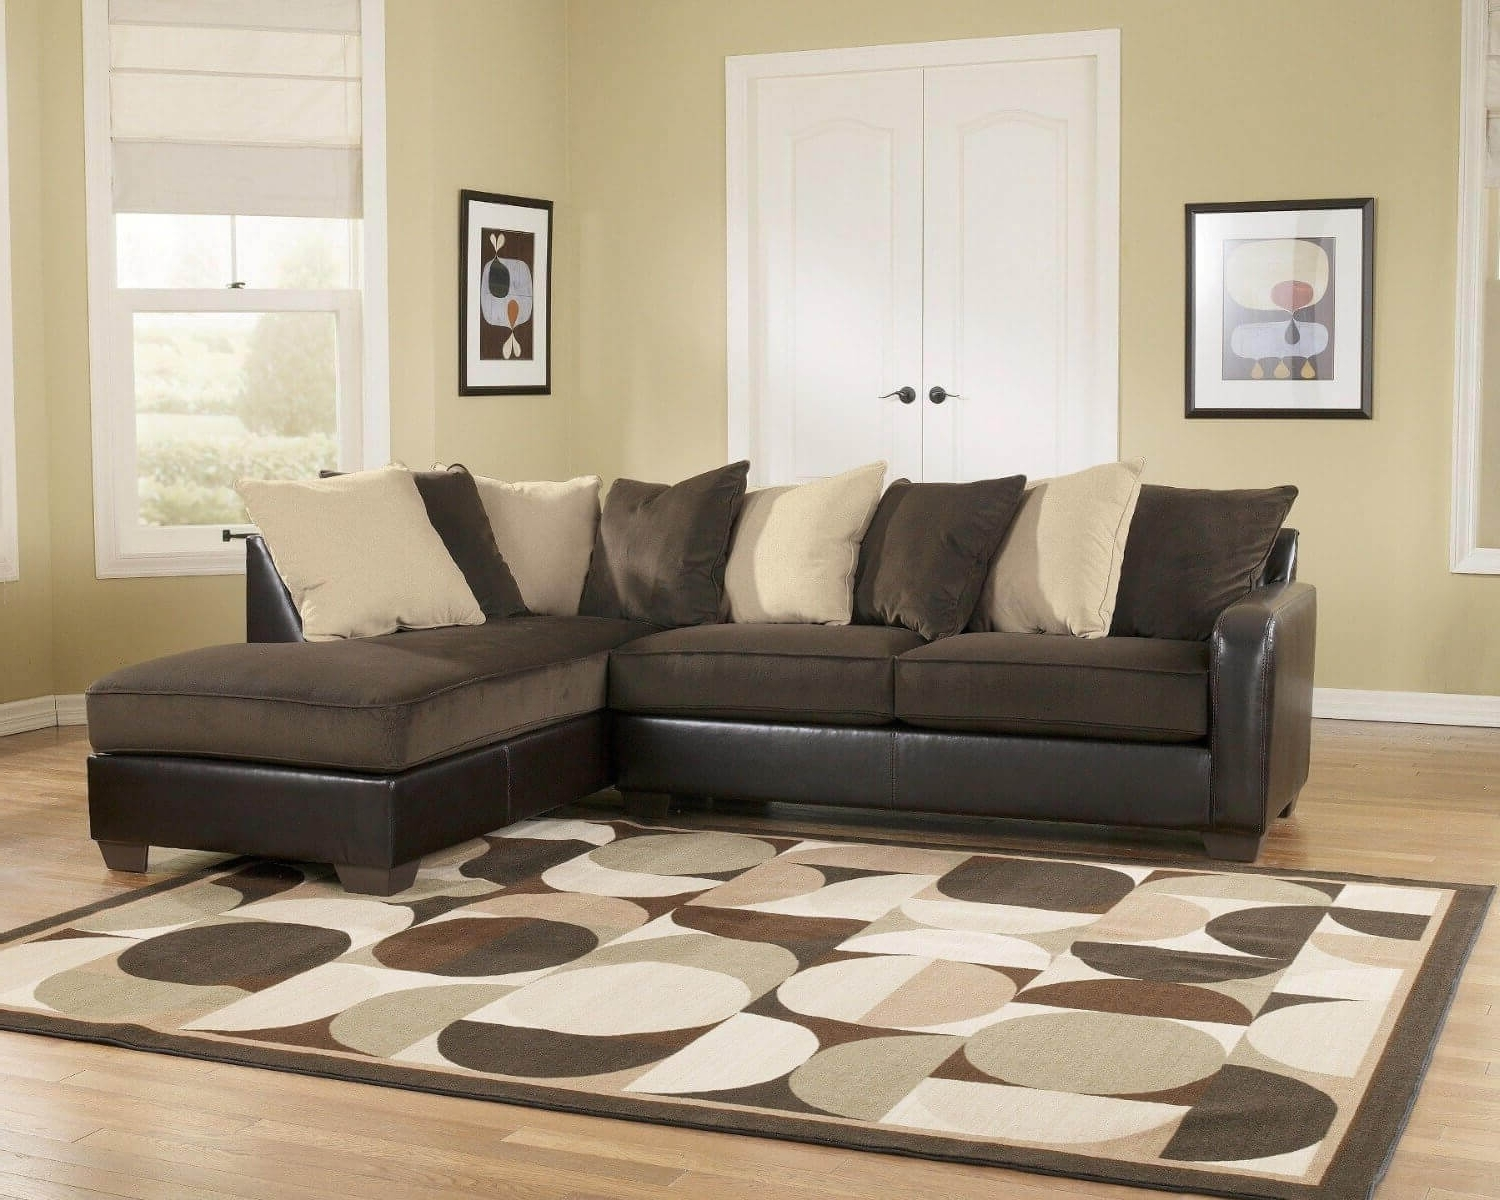 Chocolate Brown Sectional Sofa With Chaise – Fjellkjeden Inside Fashionable Chocolate Brown Sectional Sofas (View 3 of 20)